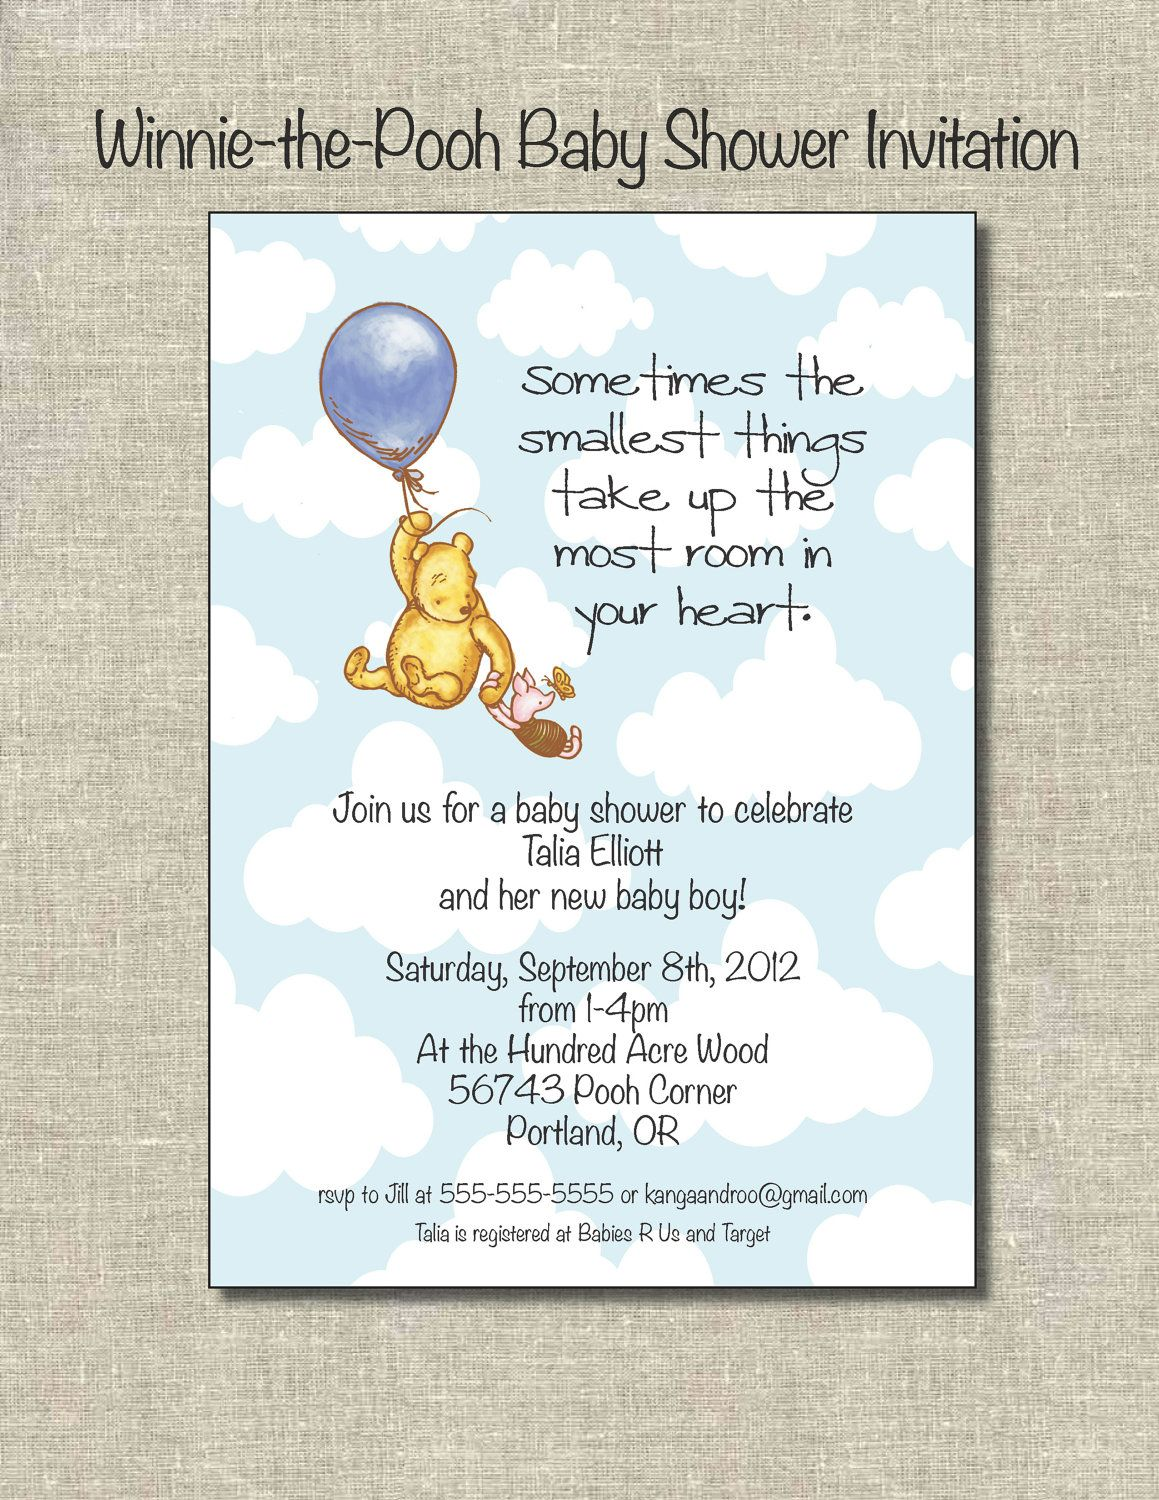 Winnie The Pooh Baby Shower Invitation/Digital File